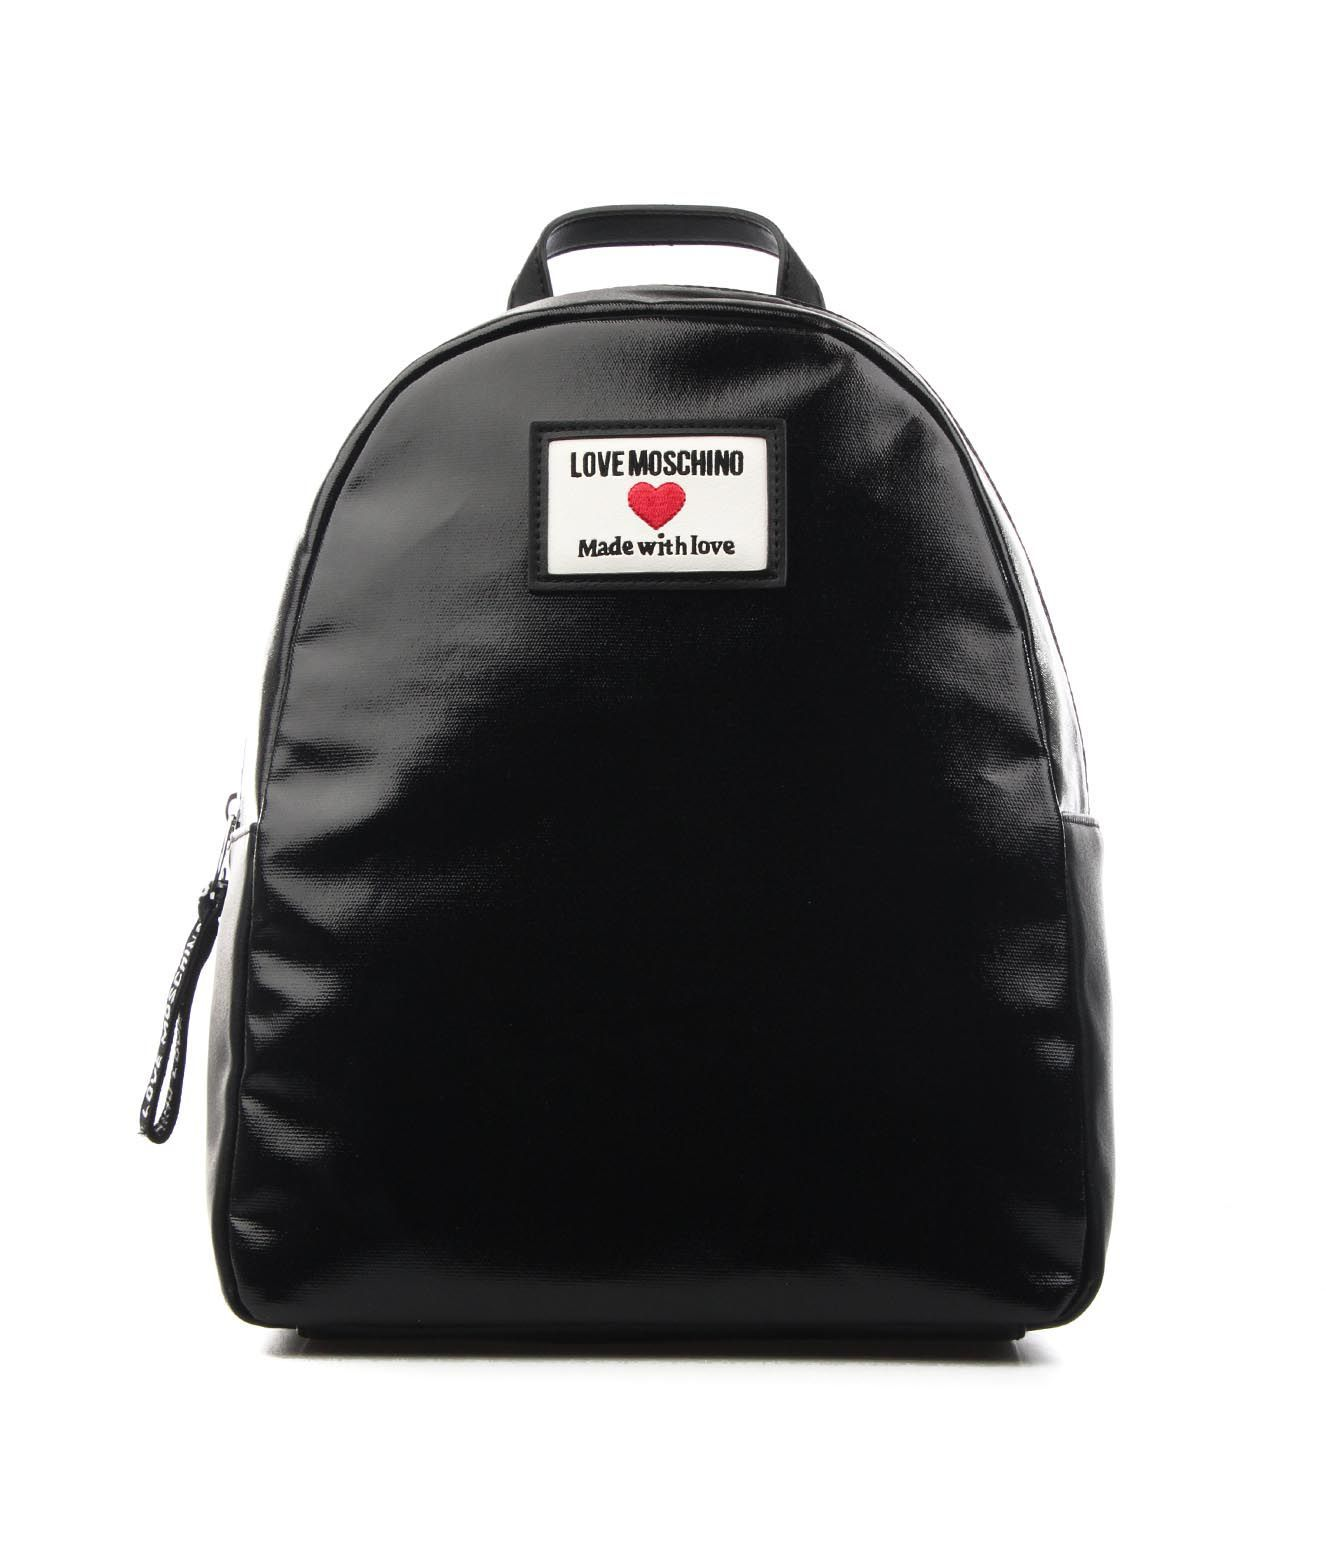 Love Moschino LOVE MOSCHINO WOMEN'S JC4031PP1CLC100A BLACK OTHER MATERIALS BACKPACK